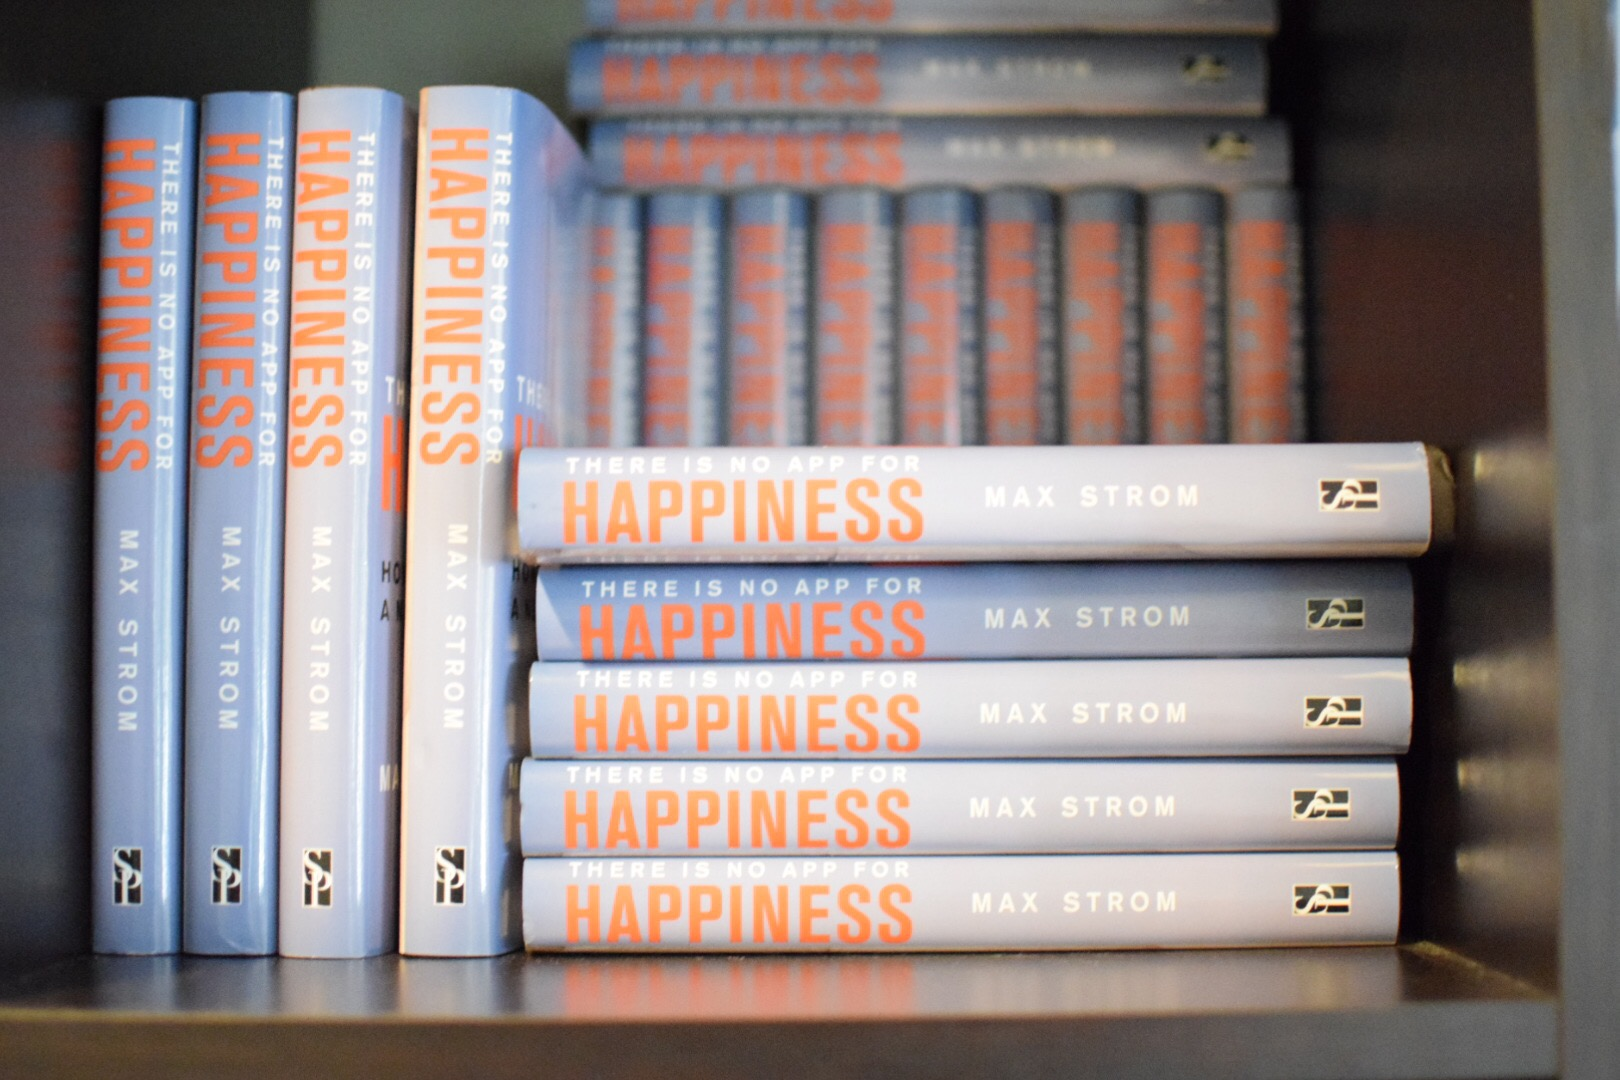 There Is No App For Happiness  by Max Strom is available at Inner Bliss Yoga Studio, $22.95